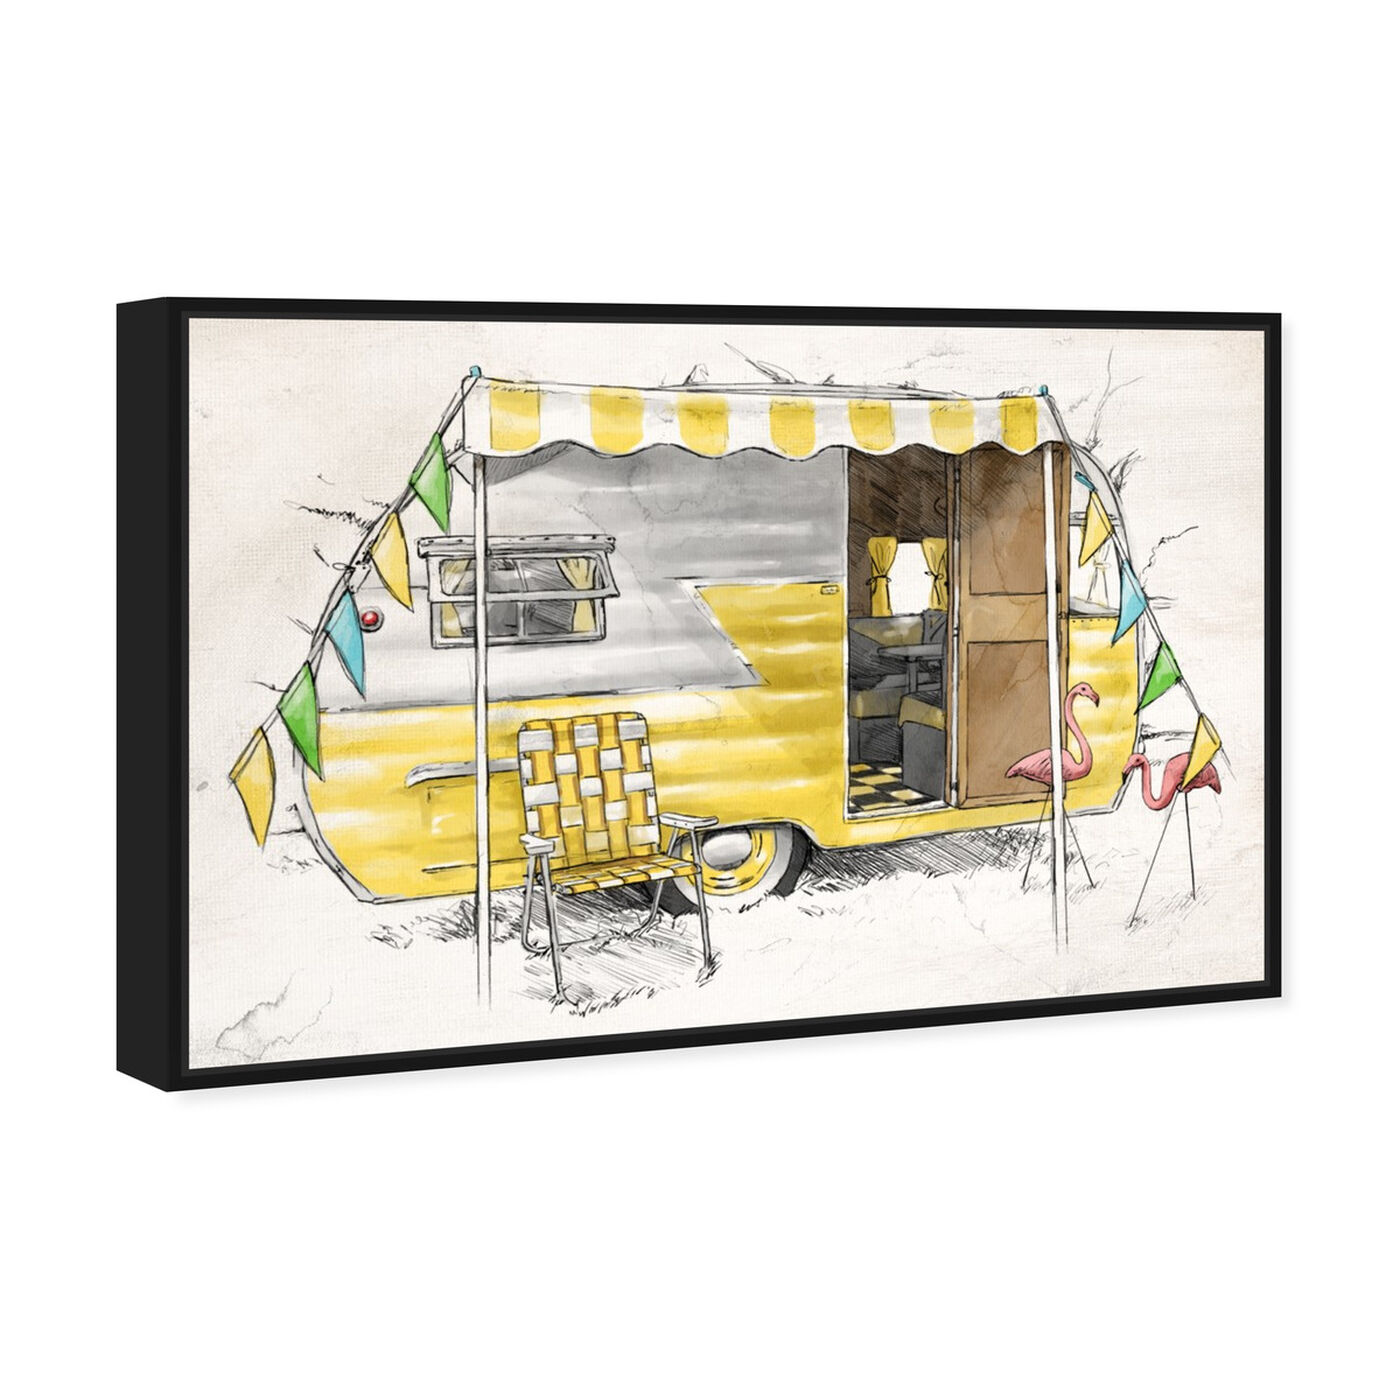 Angled view of Yellow Camper featuring entertainment and hobbies and camping art.